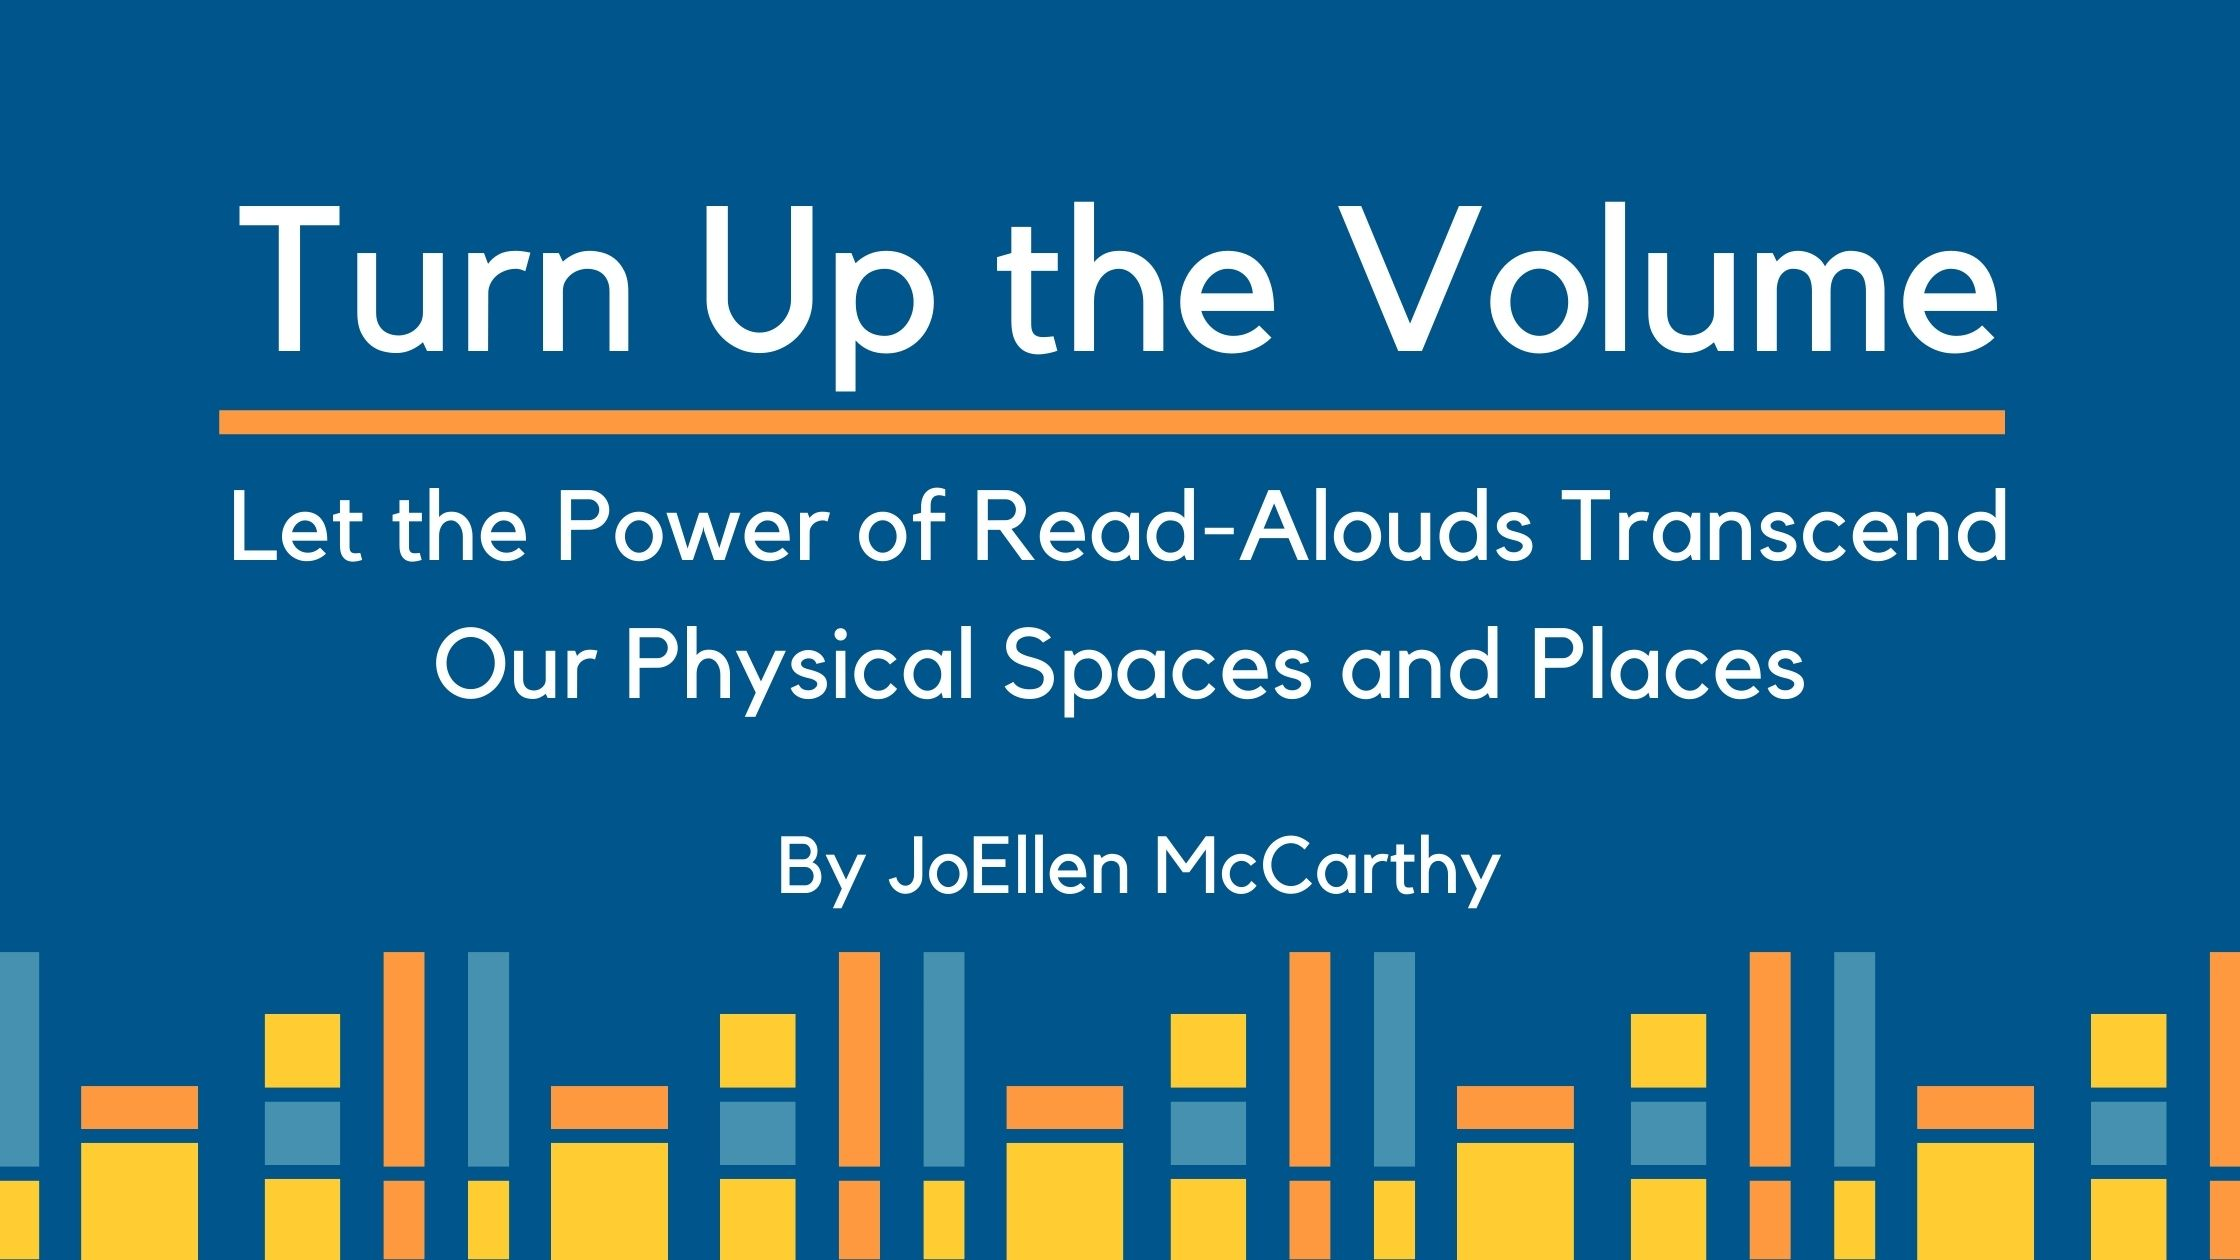 Turn up the Volume…Let the Power of Read-Alouds Transcend Our Physical Spaces and Places